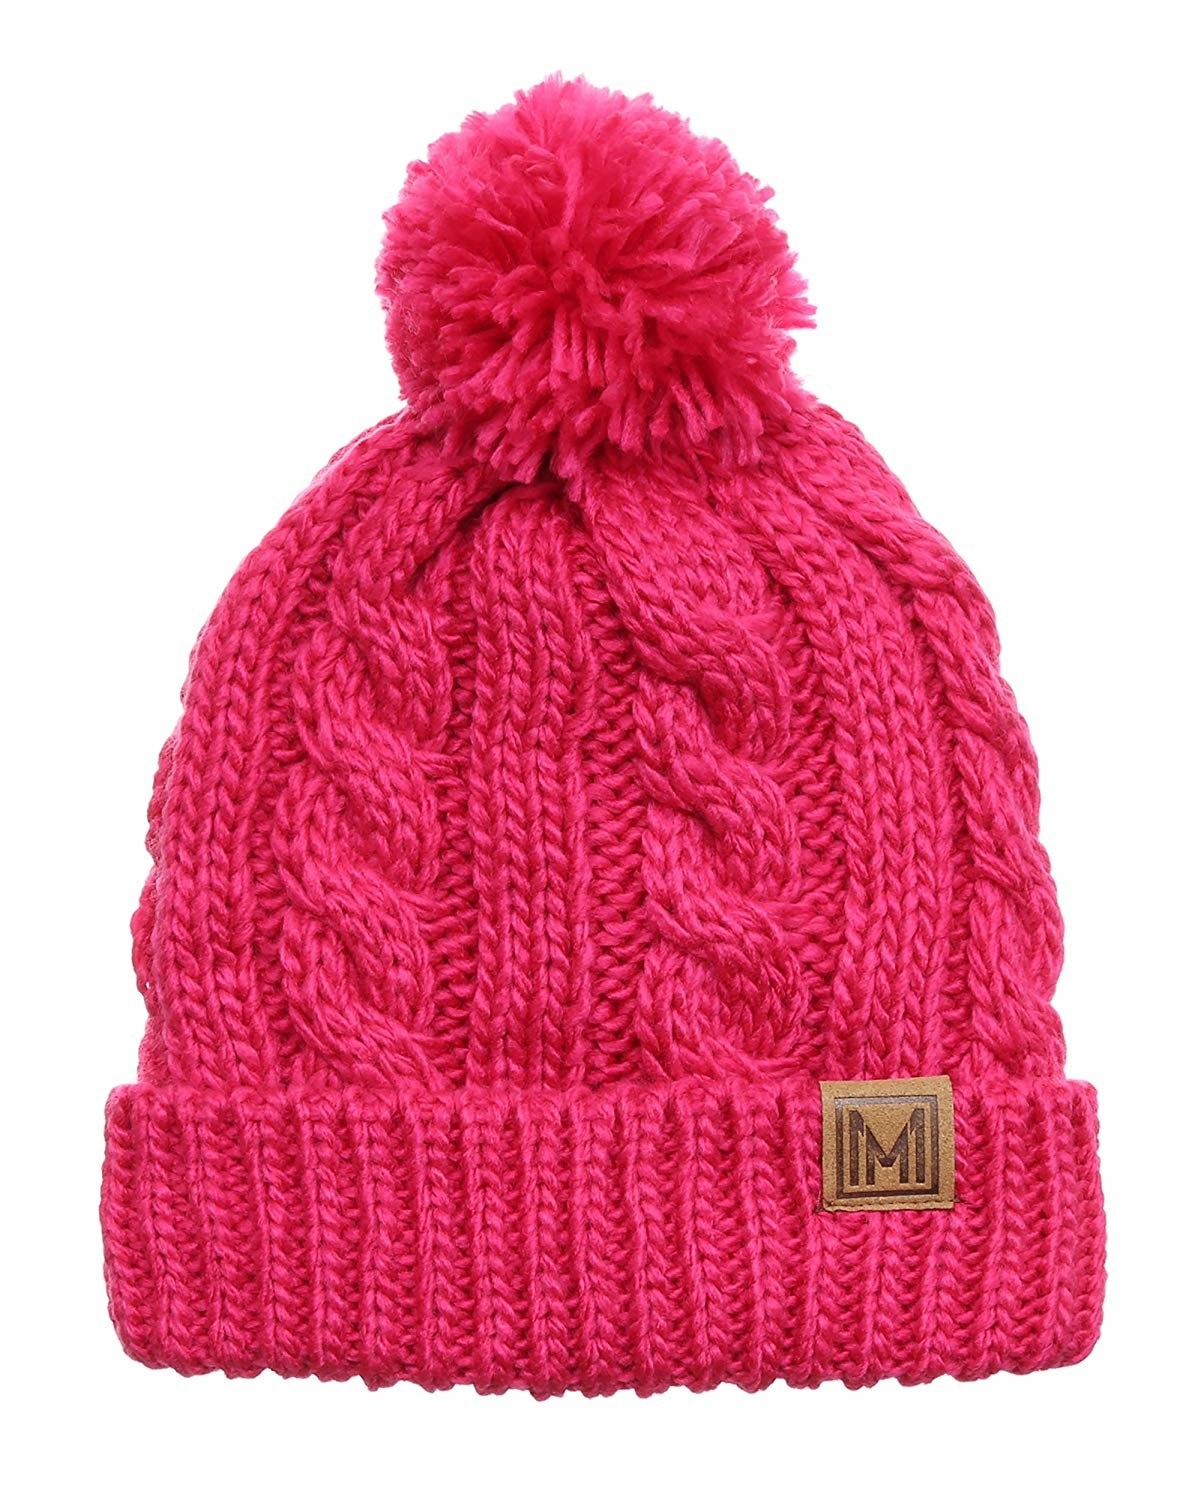 The cable knit hat with pompom in pink